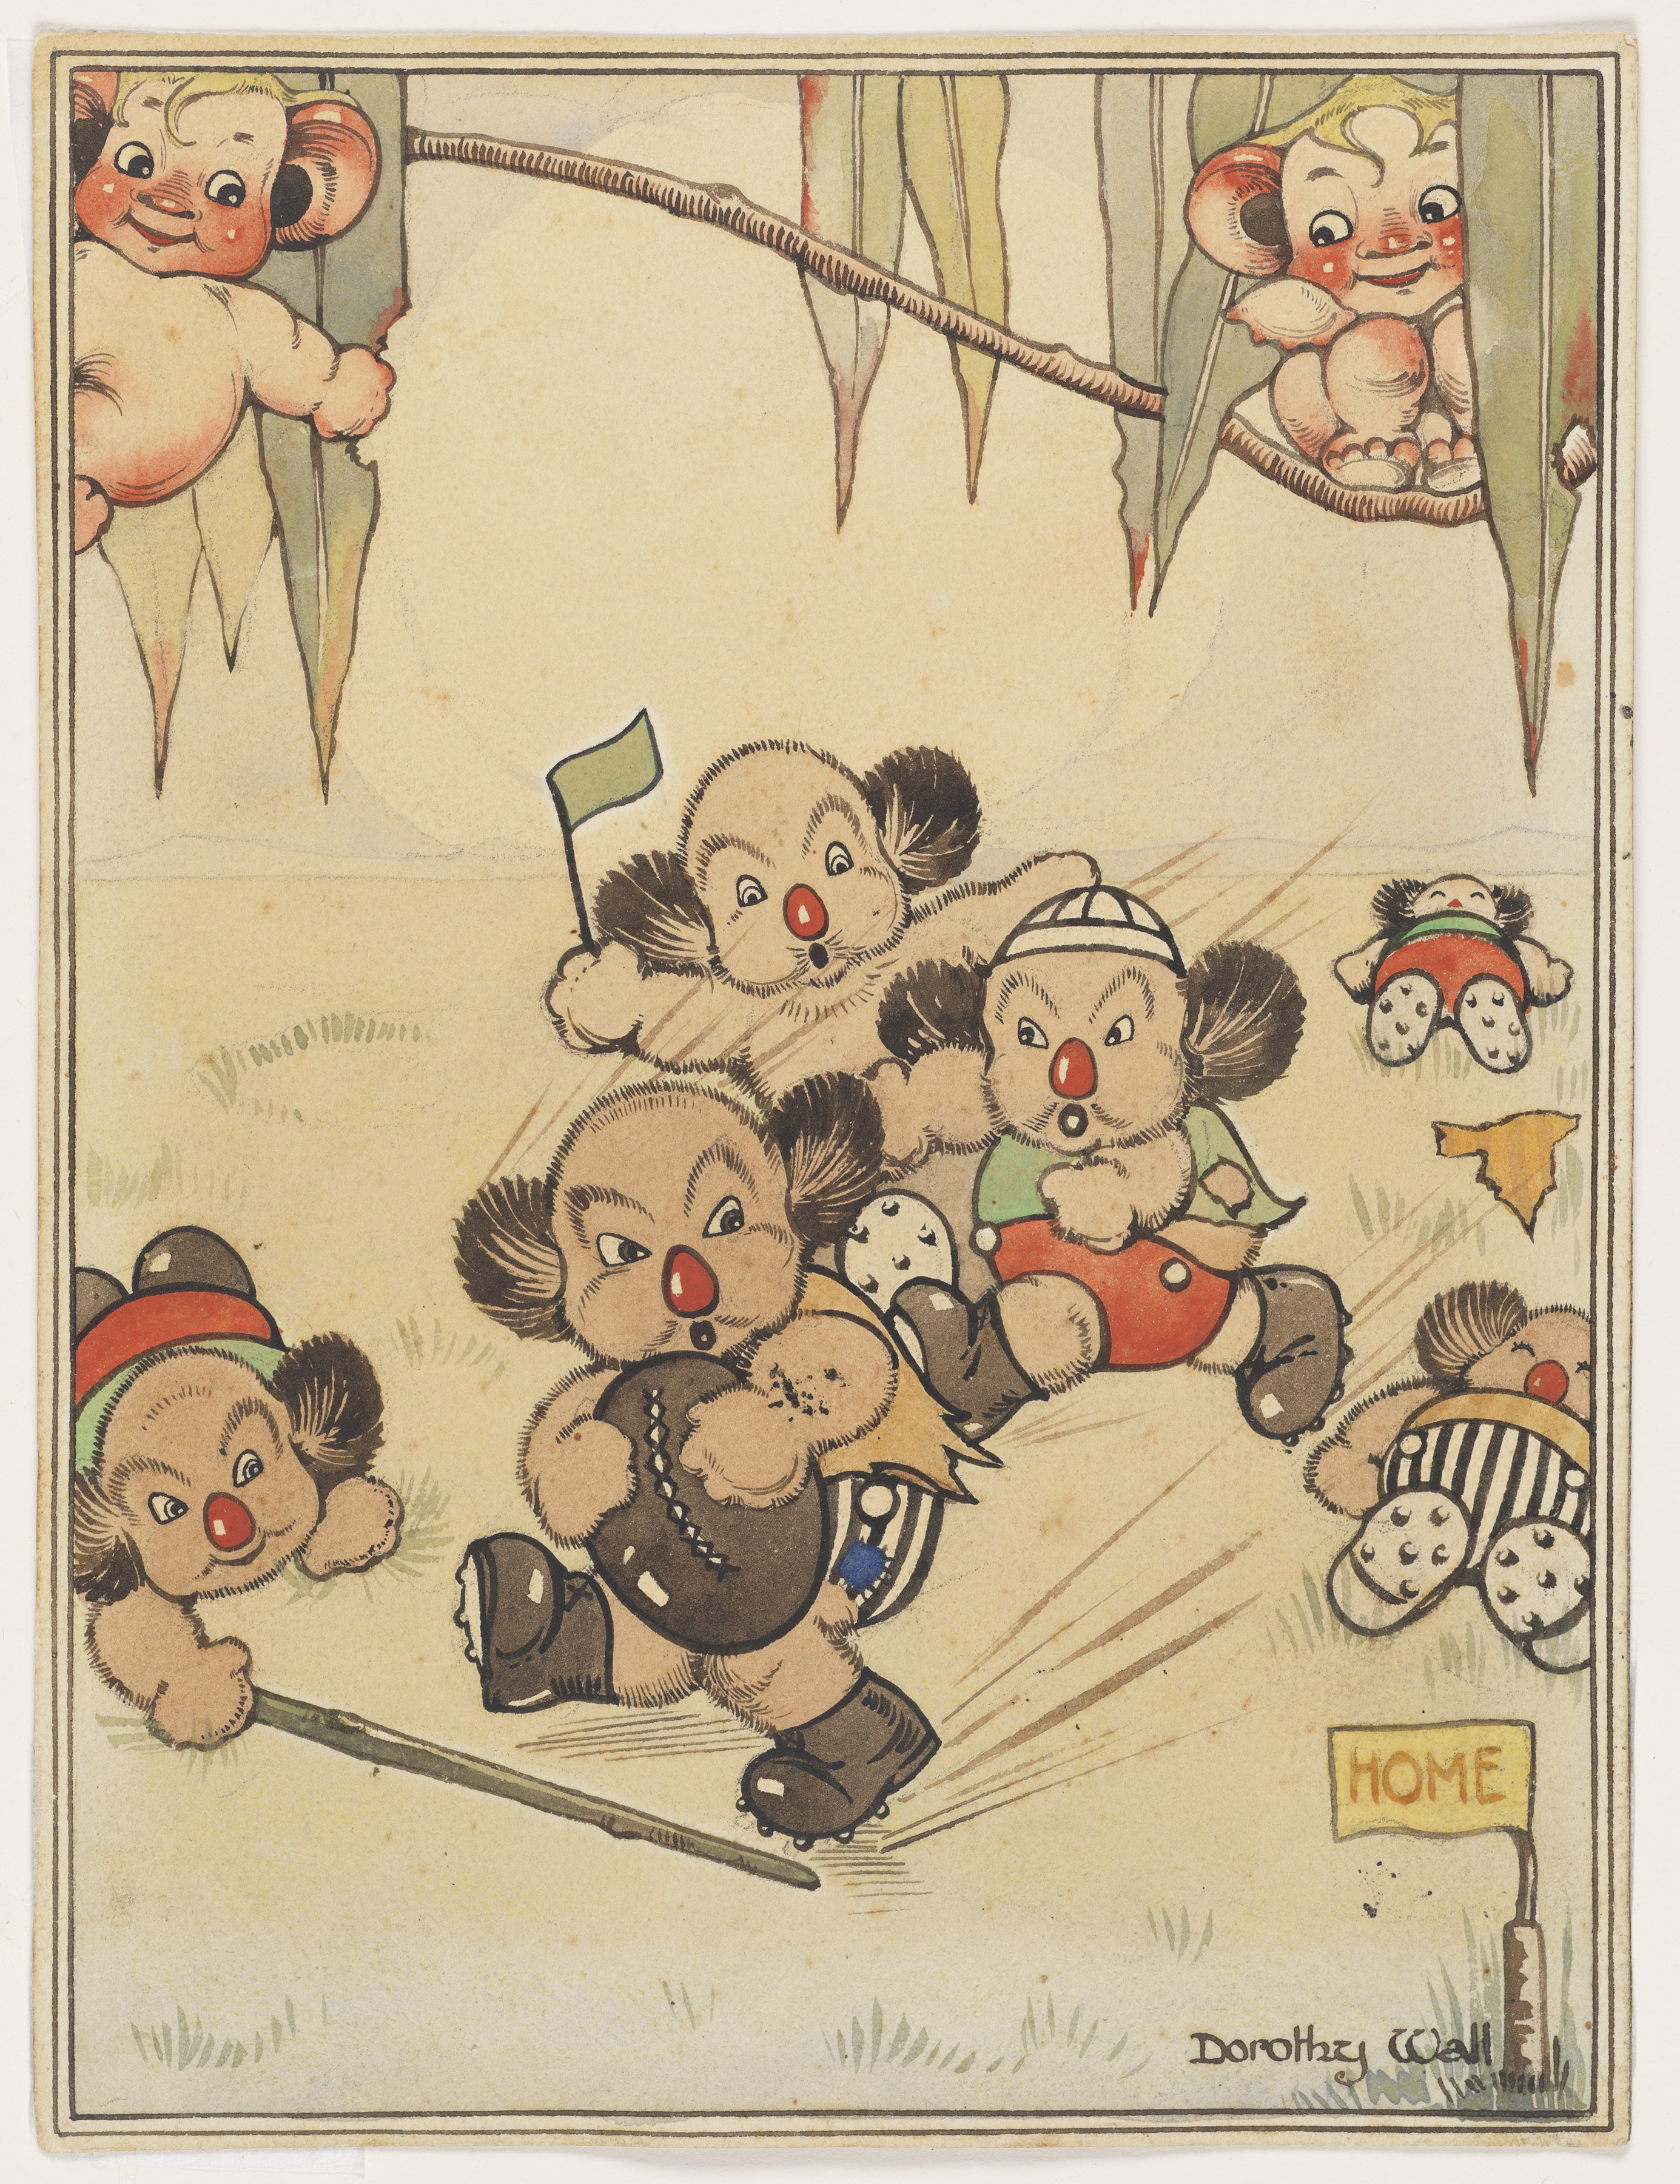 A cartoon style image of Koala's playing a game of football.